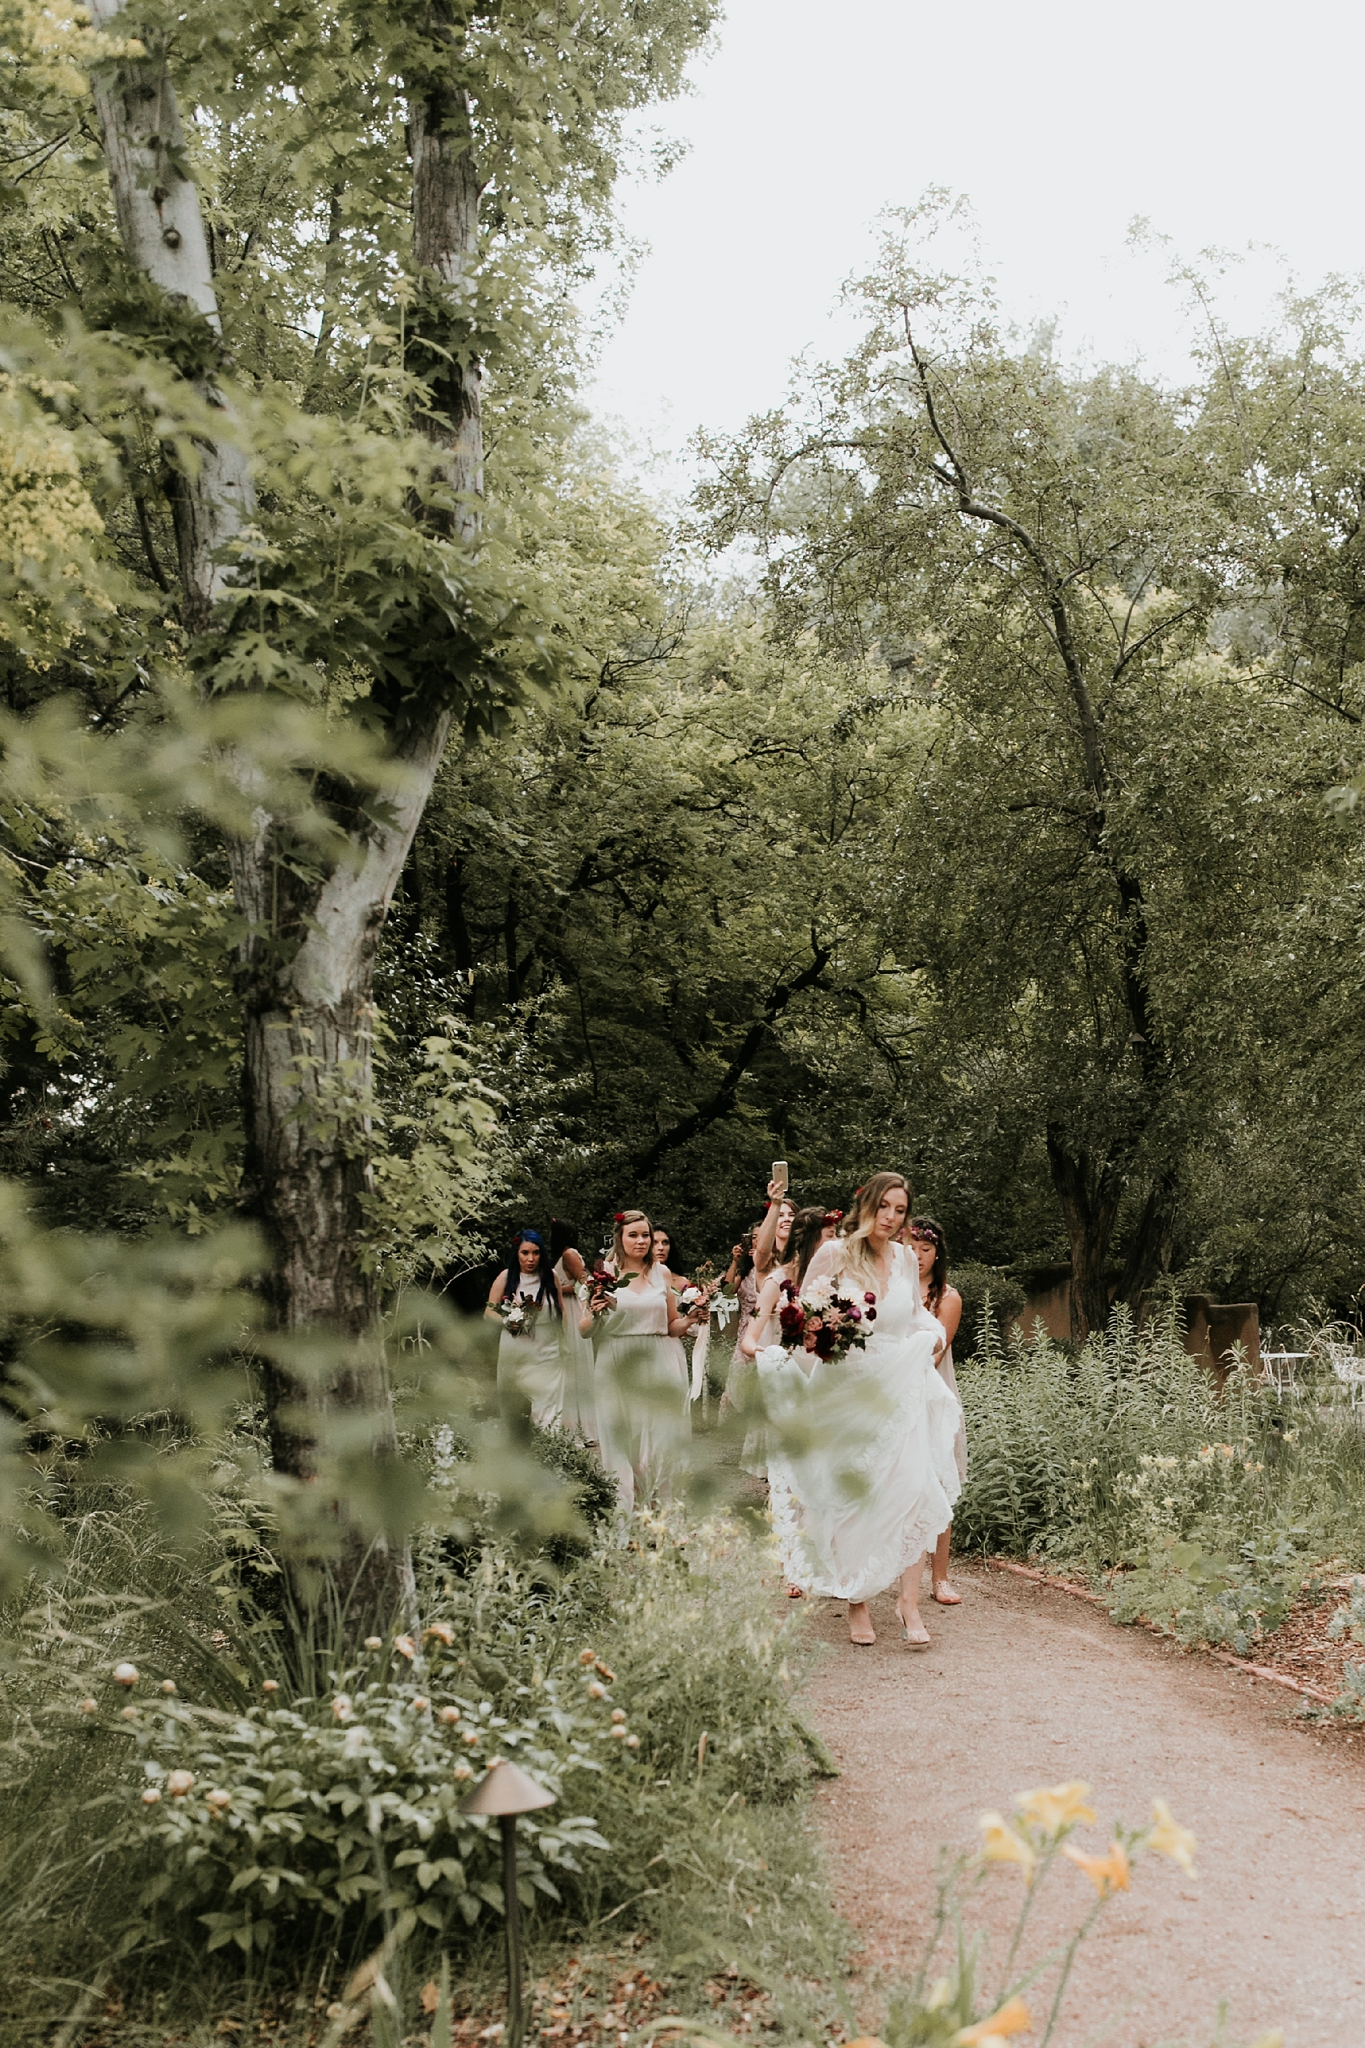 Alicia+lucia+photography+-+albuquerque+wedding+photographer+-+santa+fe+wedding+photography+-+new+mexico+wedding+photographer+-+new+mexico+wedding+-+new+mexico+wedding+-+colorado+wedding+-+bridesmaids+-+bridesmaid+style_0038.jpg